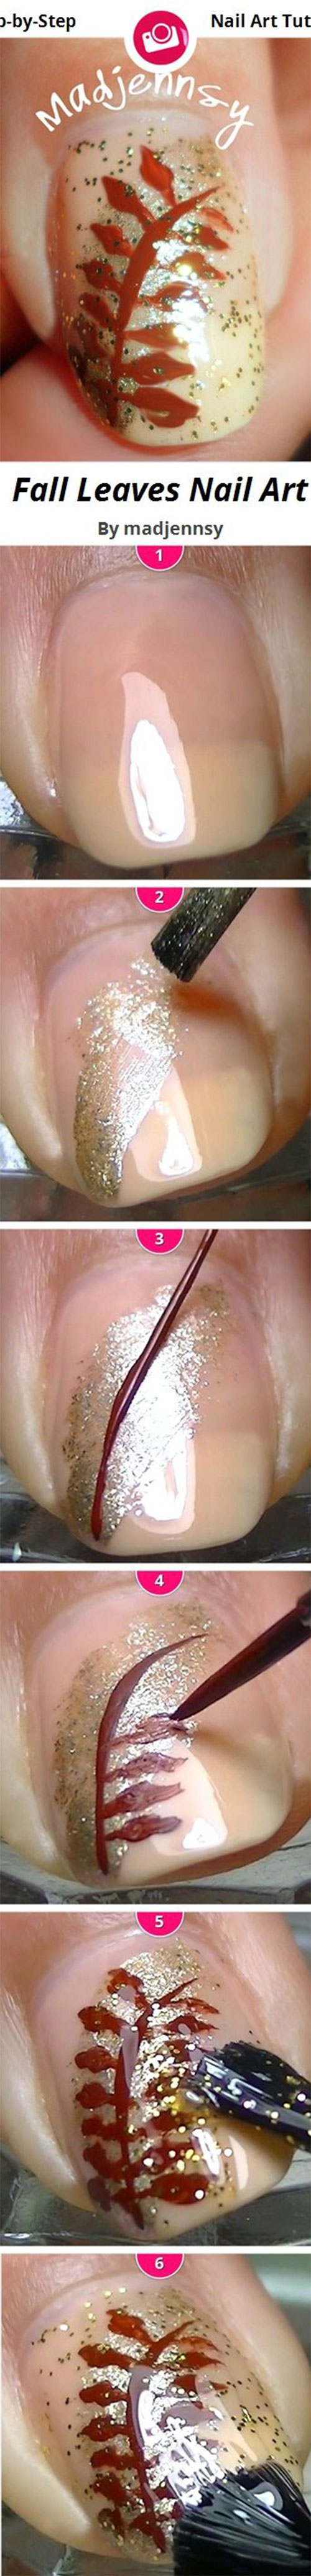 Step-By-Step-Autumn-Nail-Art-Tutorials-For-Beginners-Learners-2014-5